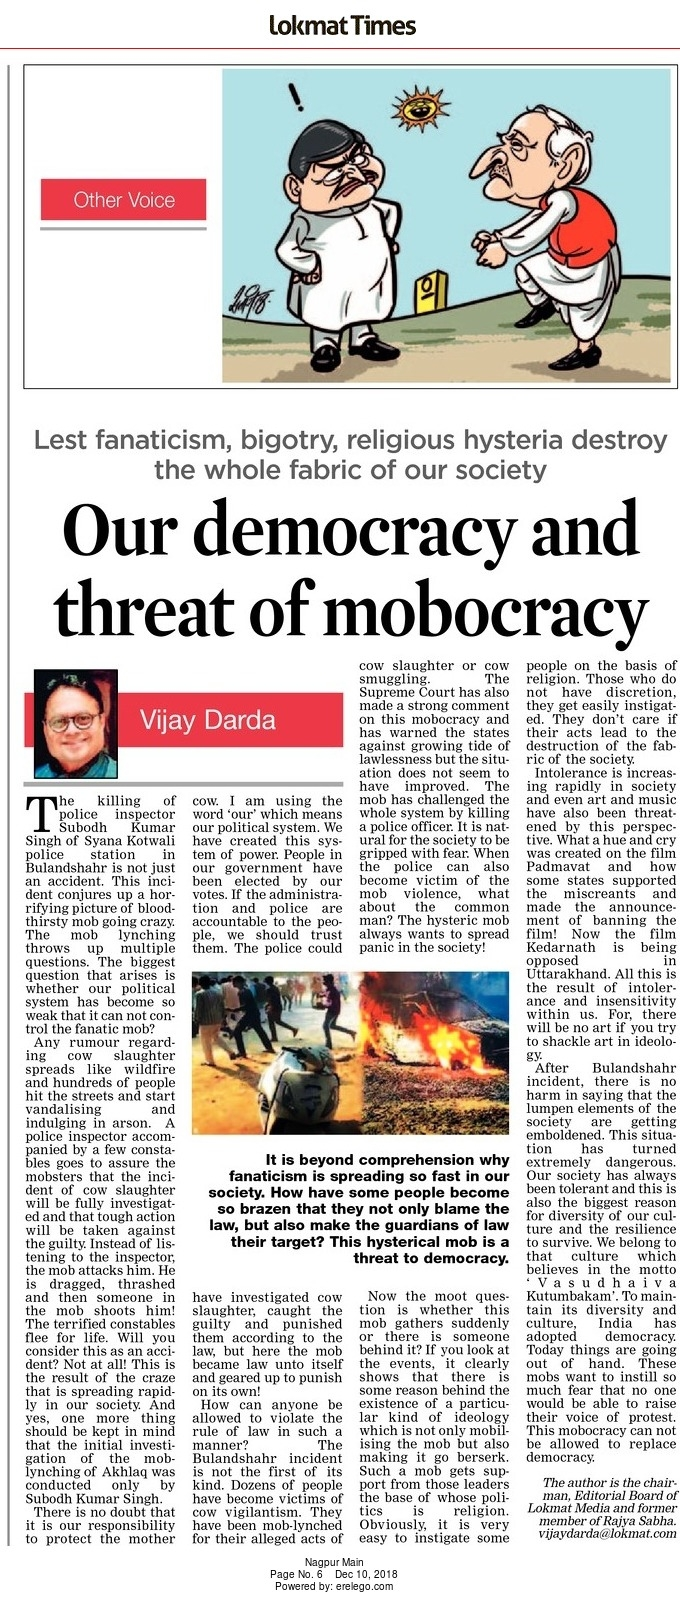 Our democracy and threat of mobocracy